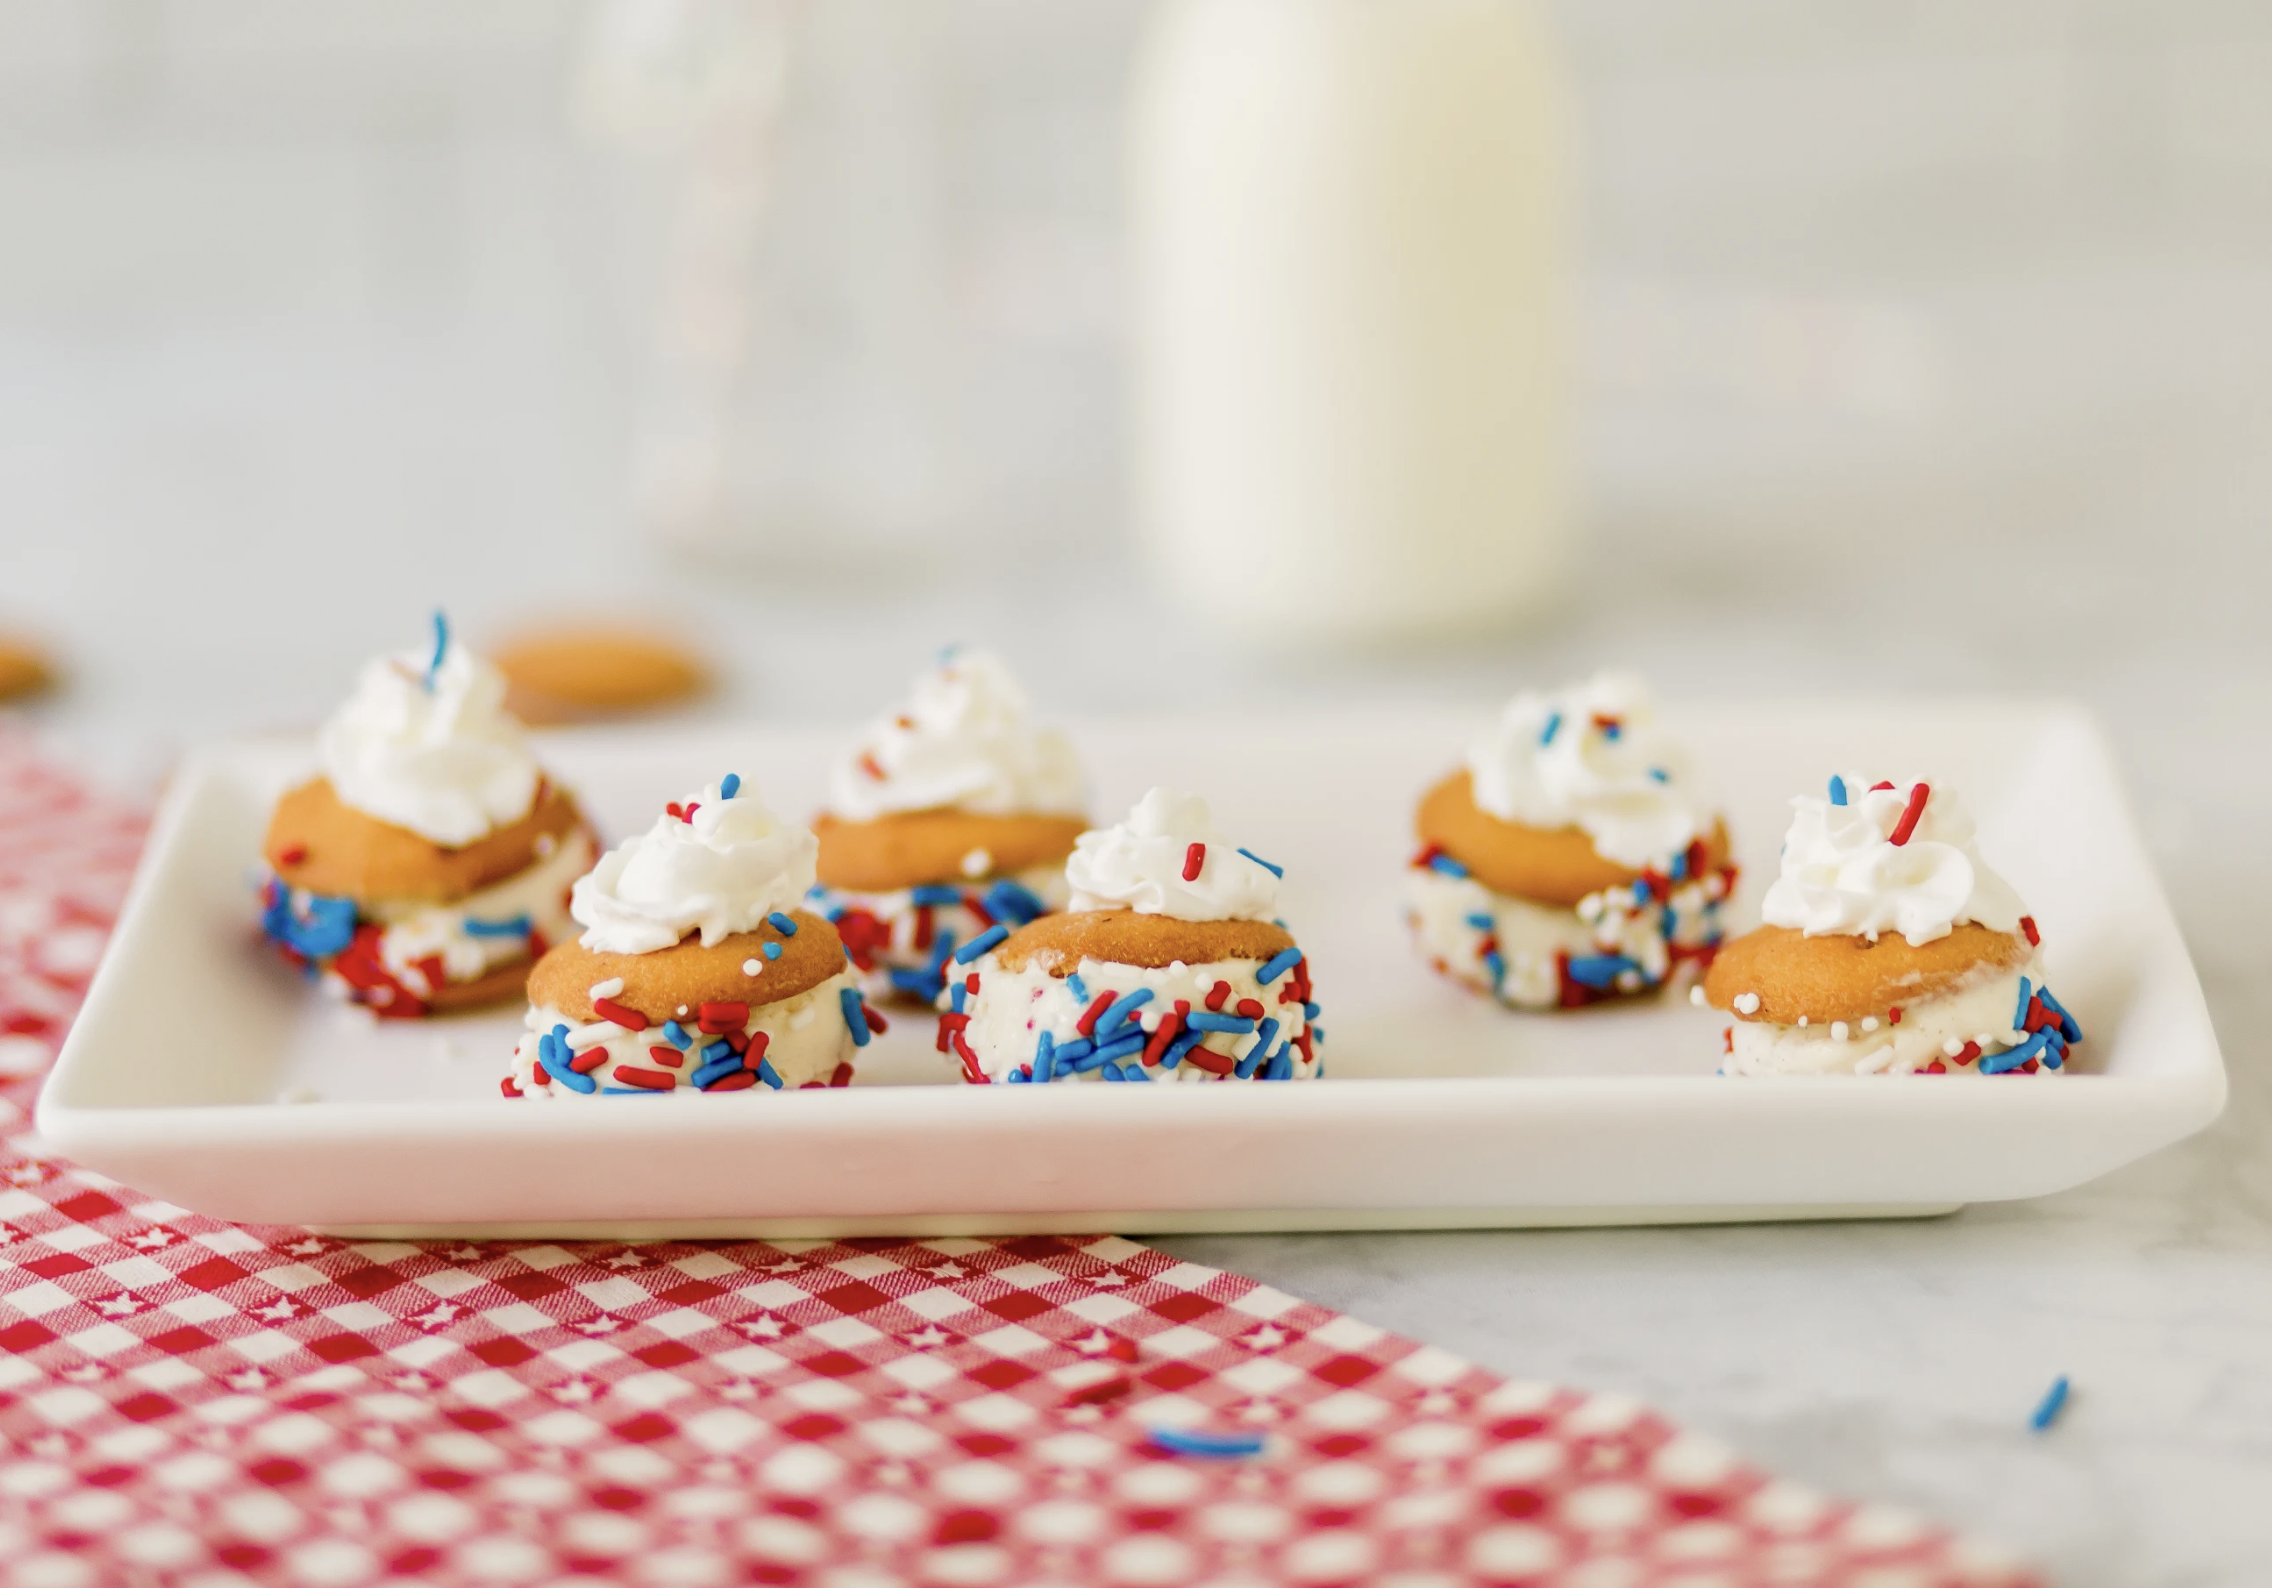 Patriotic, delicious and refreshing, these Red, White and Blue Mini Ice Cream Sandwiches with NILLA Wafers are the perfect summer snacks or desserts for your next summer party!